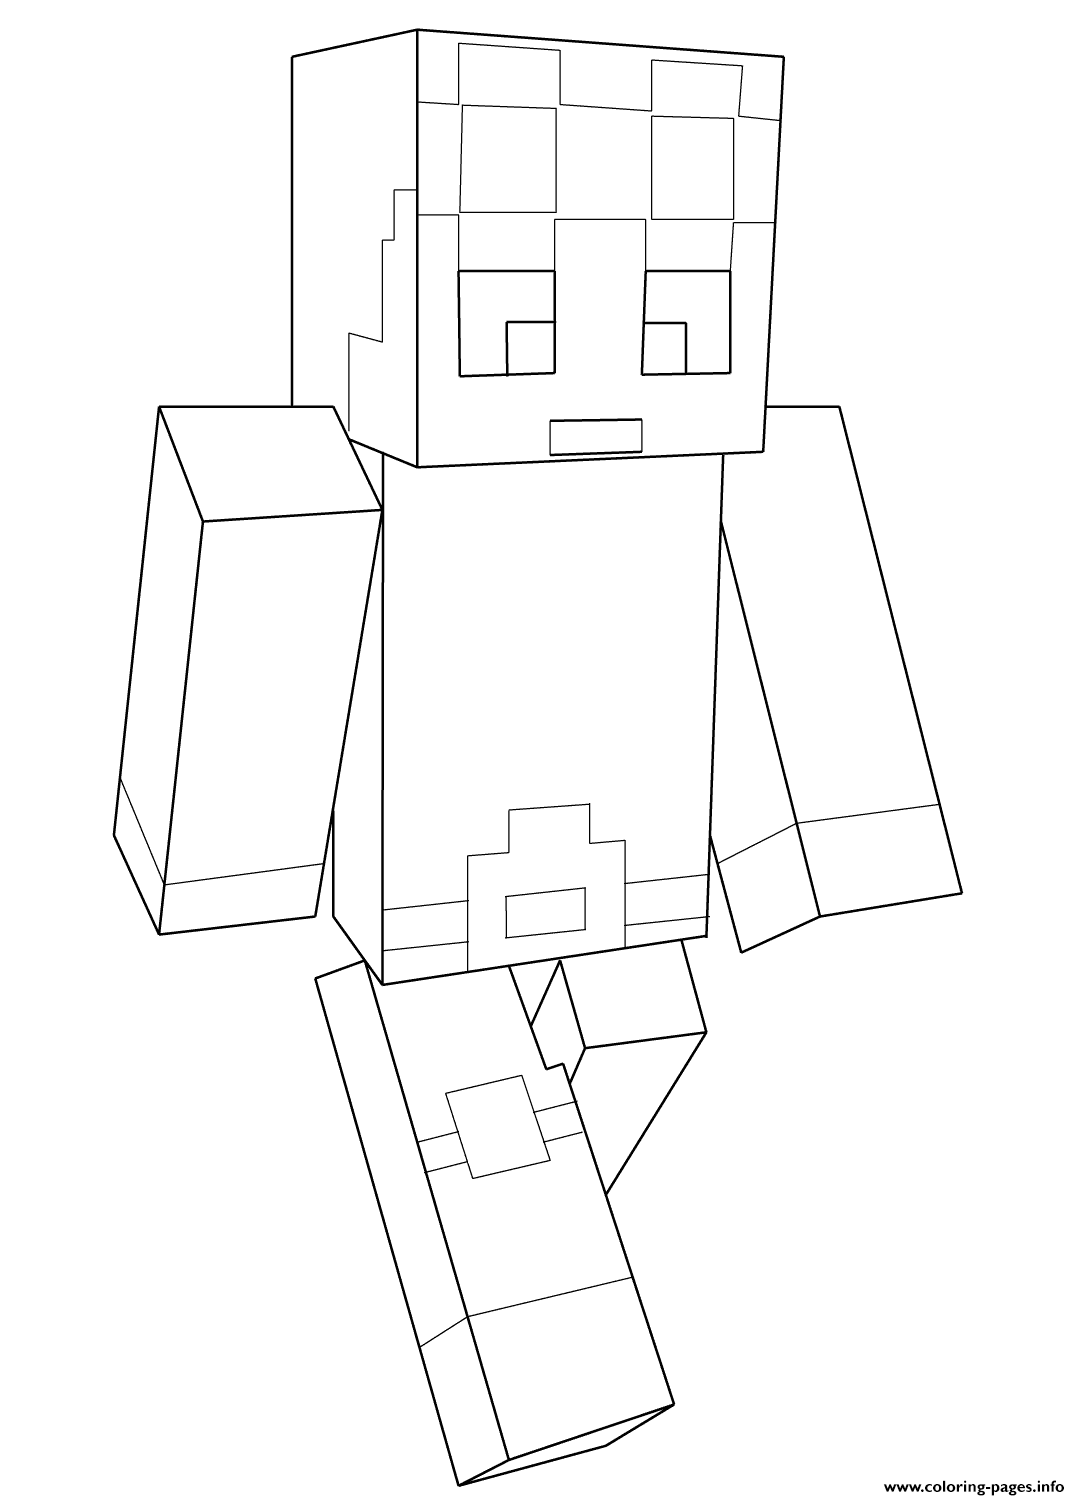 Minecraft Dantdm Coloring Pages Printable